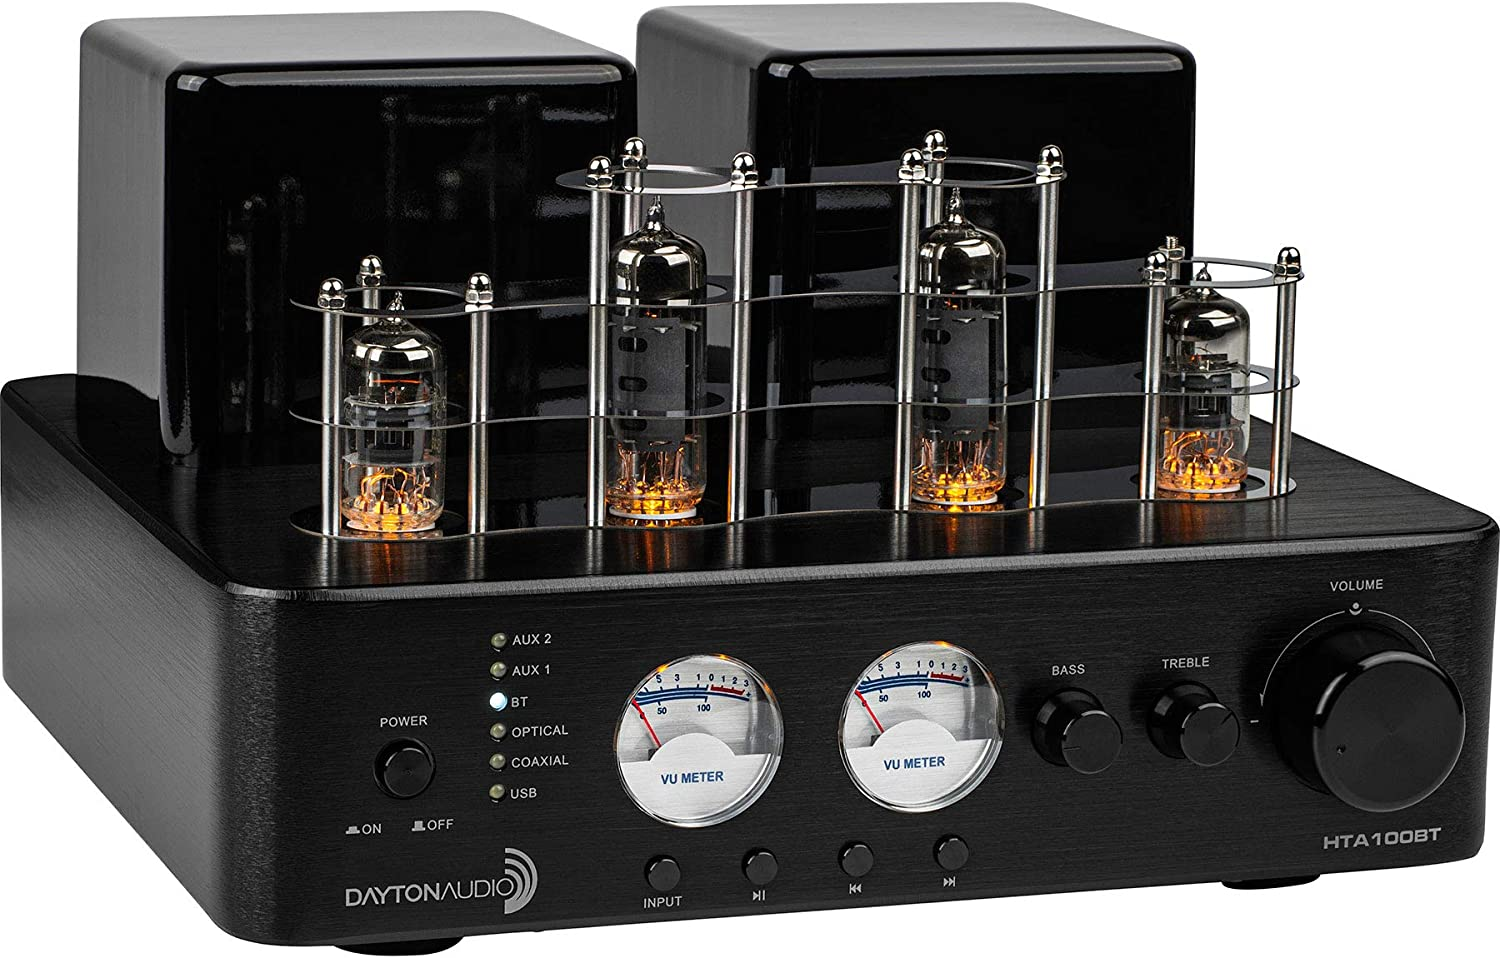 Dayton Audio HTA100BT Hybrid Stereo Tube Amplifier with Bluetooth USB Aux in Sub Out 100W